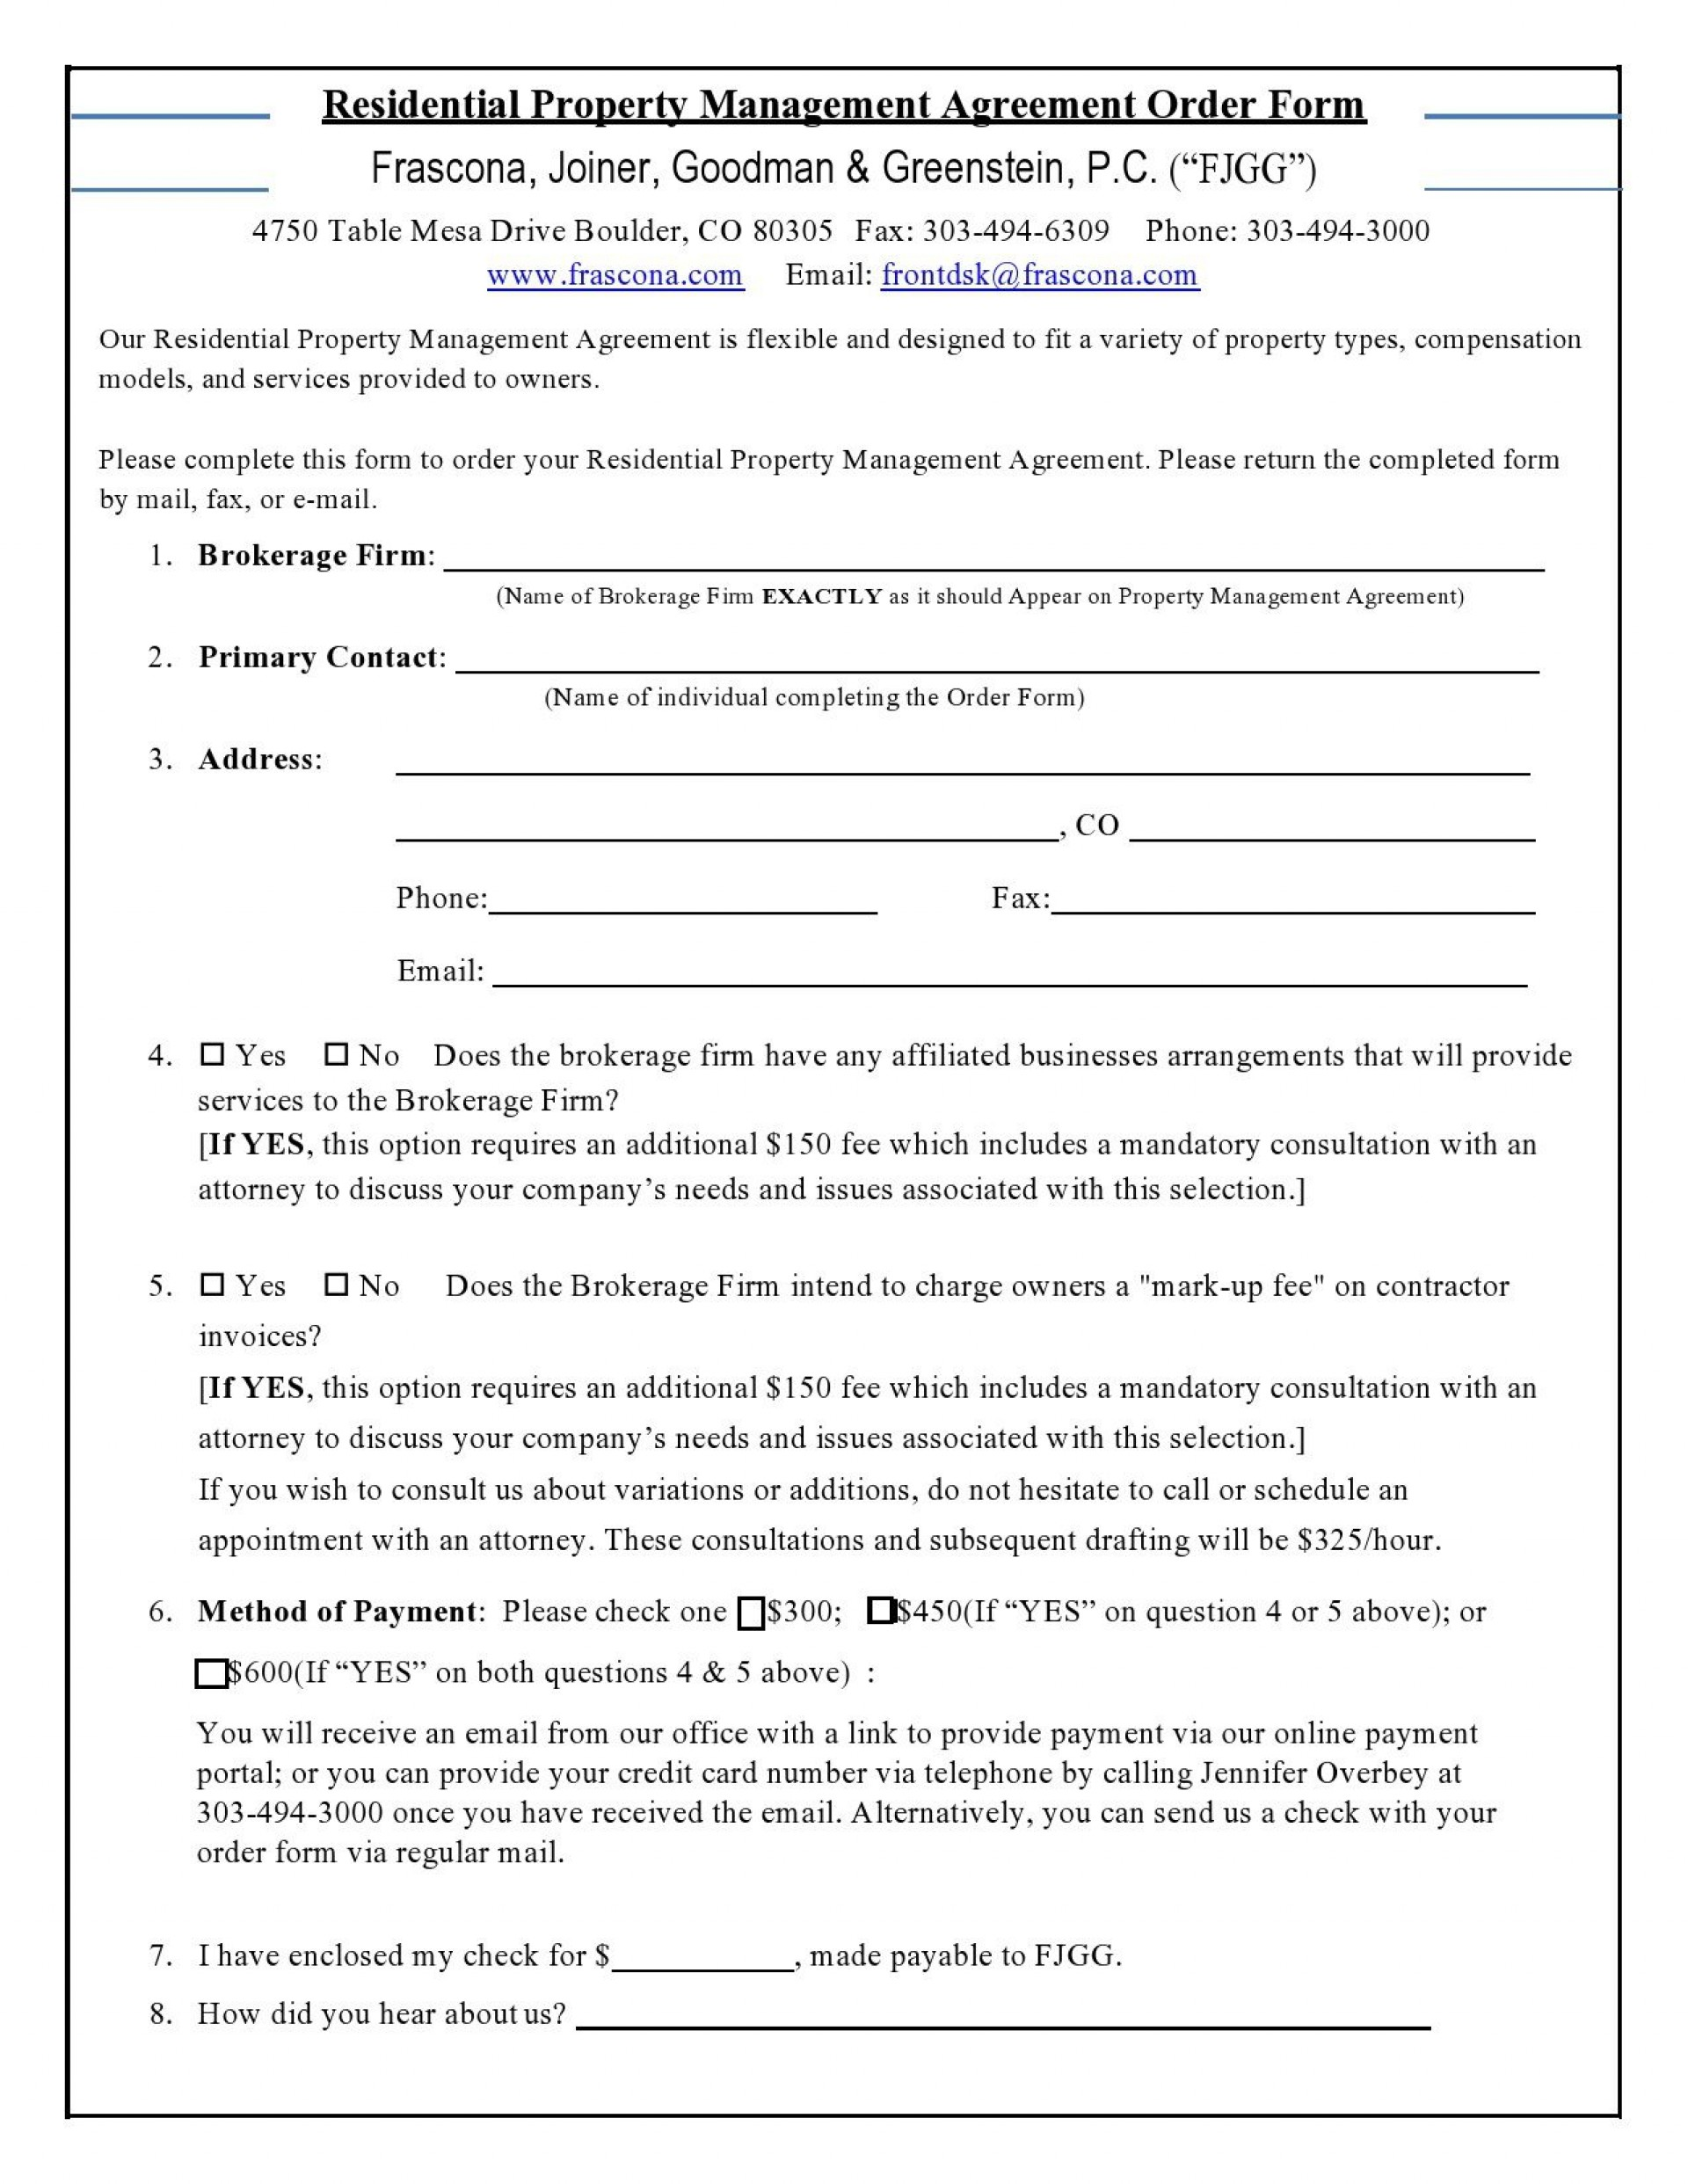 008 Unforgettable Property Management Agreement Template Pdf Photo  Contract1920